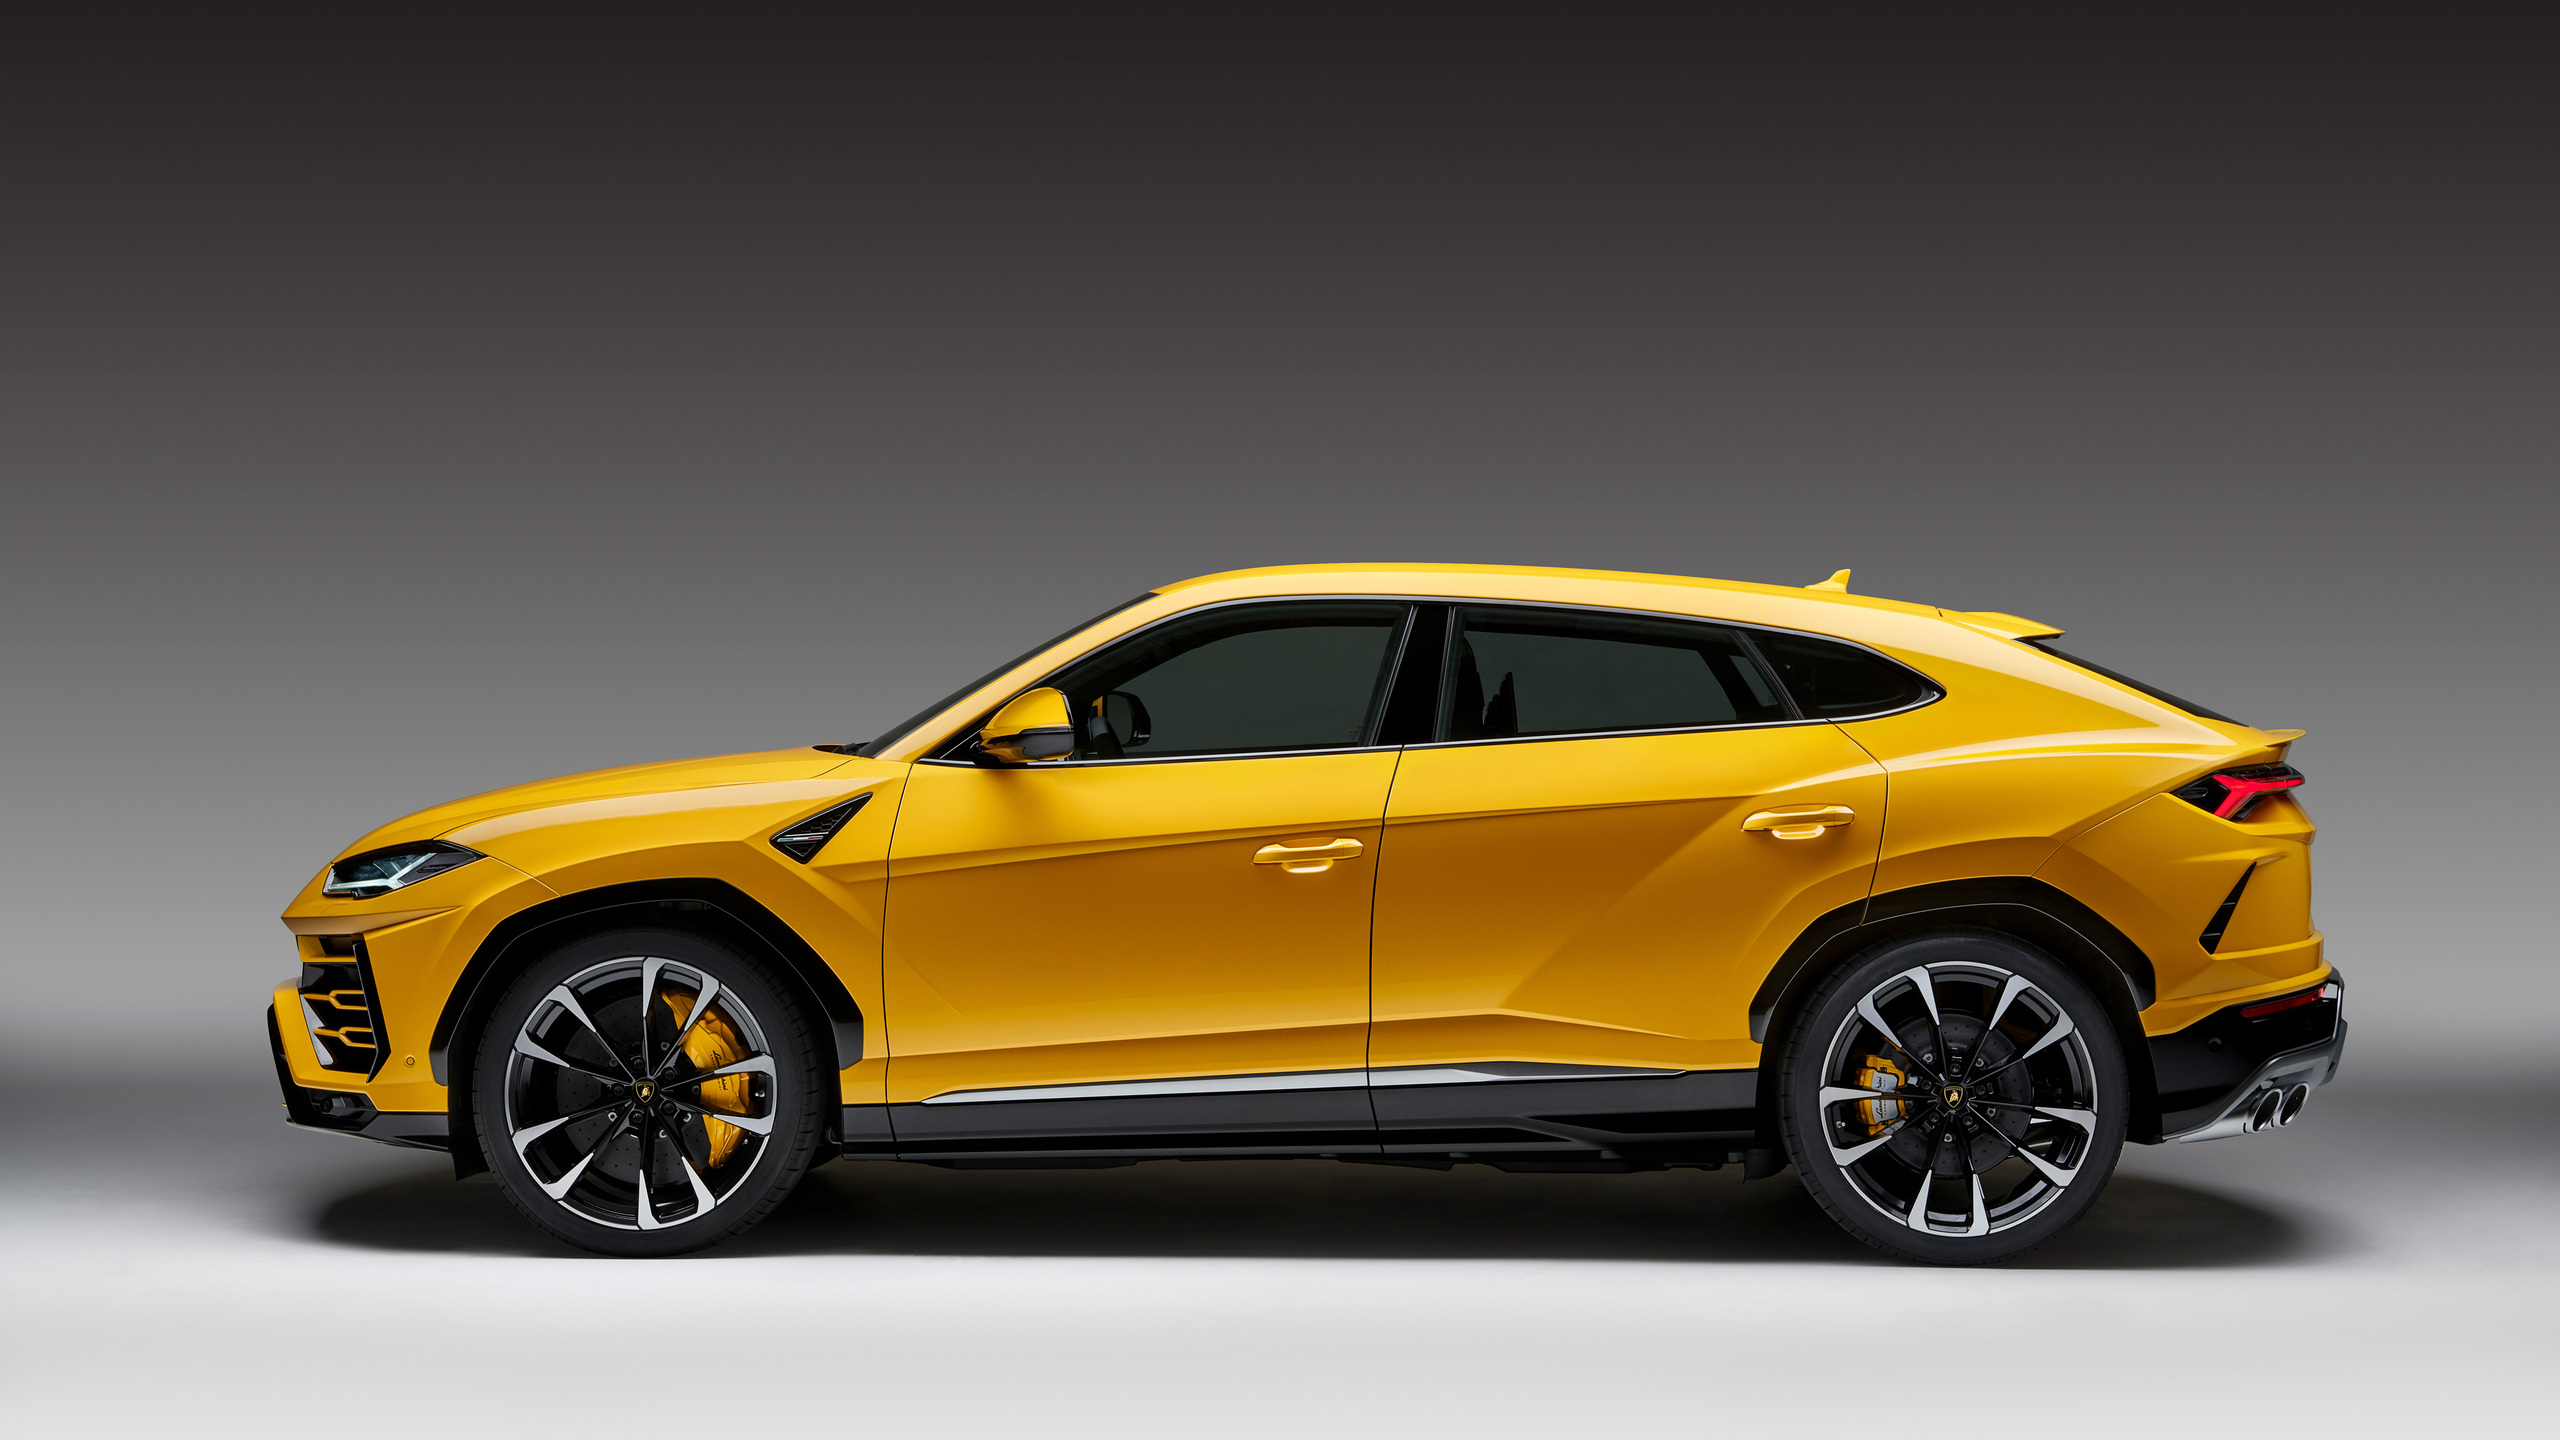 2560x1440 Lamborghini Urus Side View 4k 1440p Resolution Hd 4k